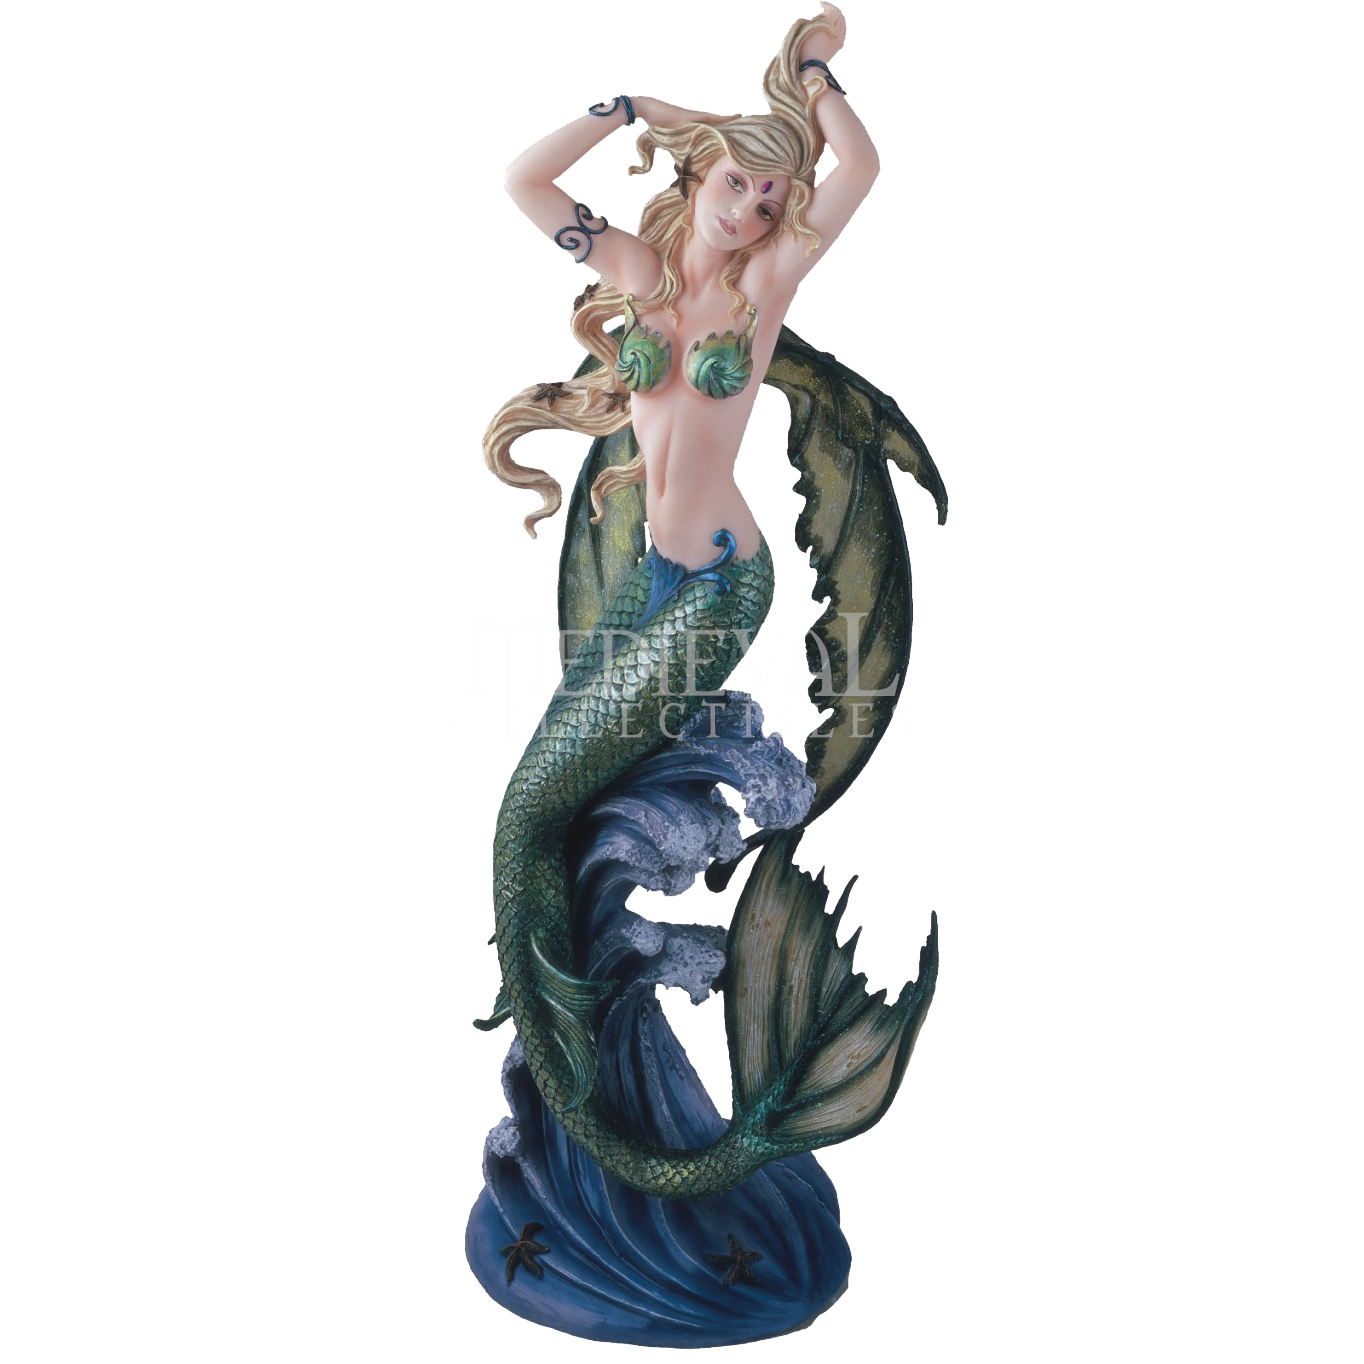 Faerie Statues Fairy Mermaid Statue In 2019 Master Bedroom Mermaid Fairy